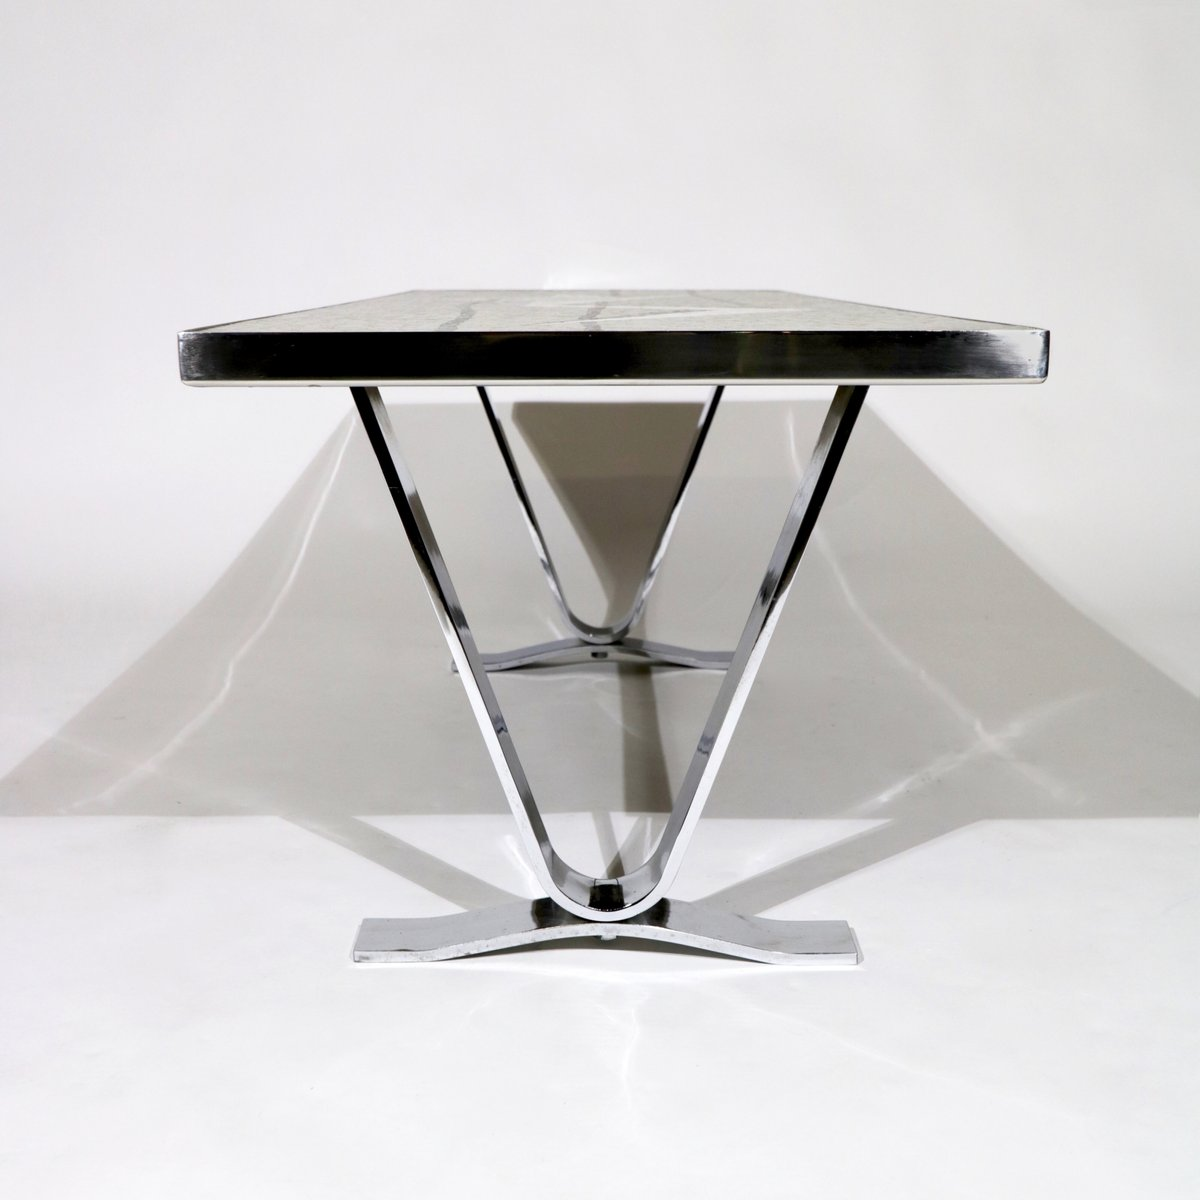 German Futuristic Coffee Table With Mosaic 1960s For Sale At Pamono